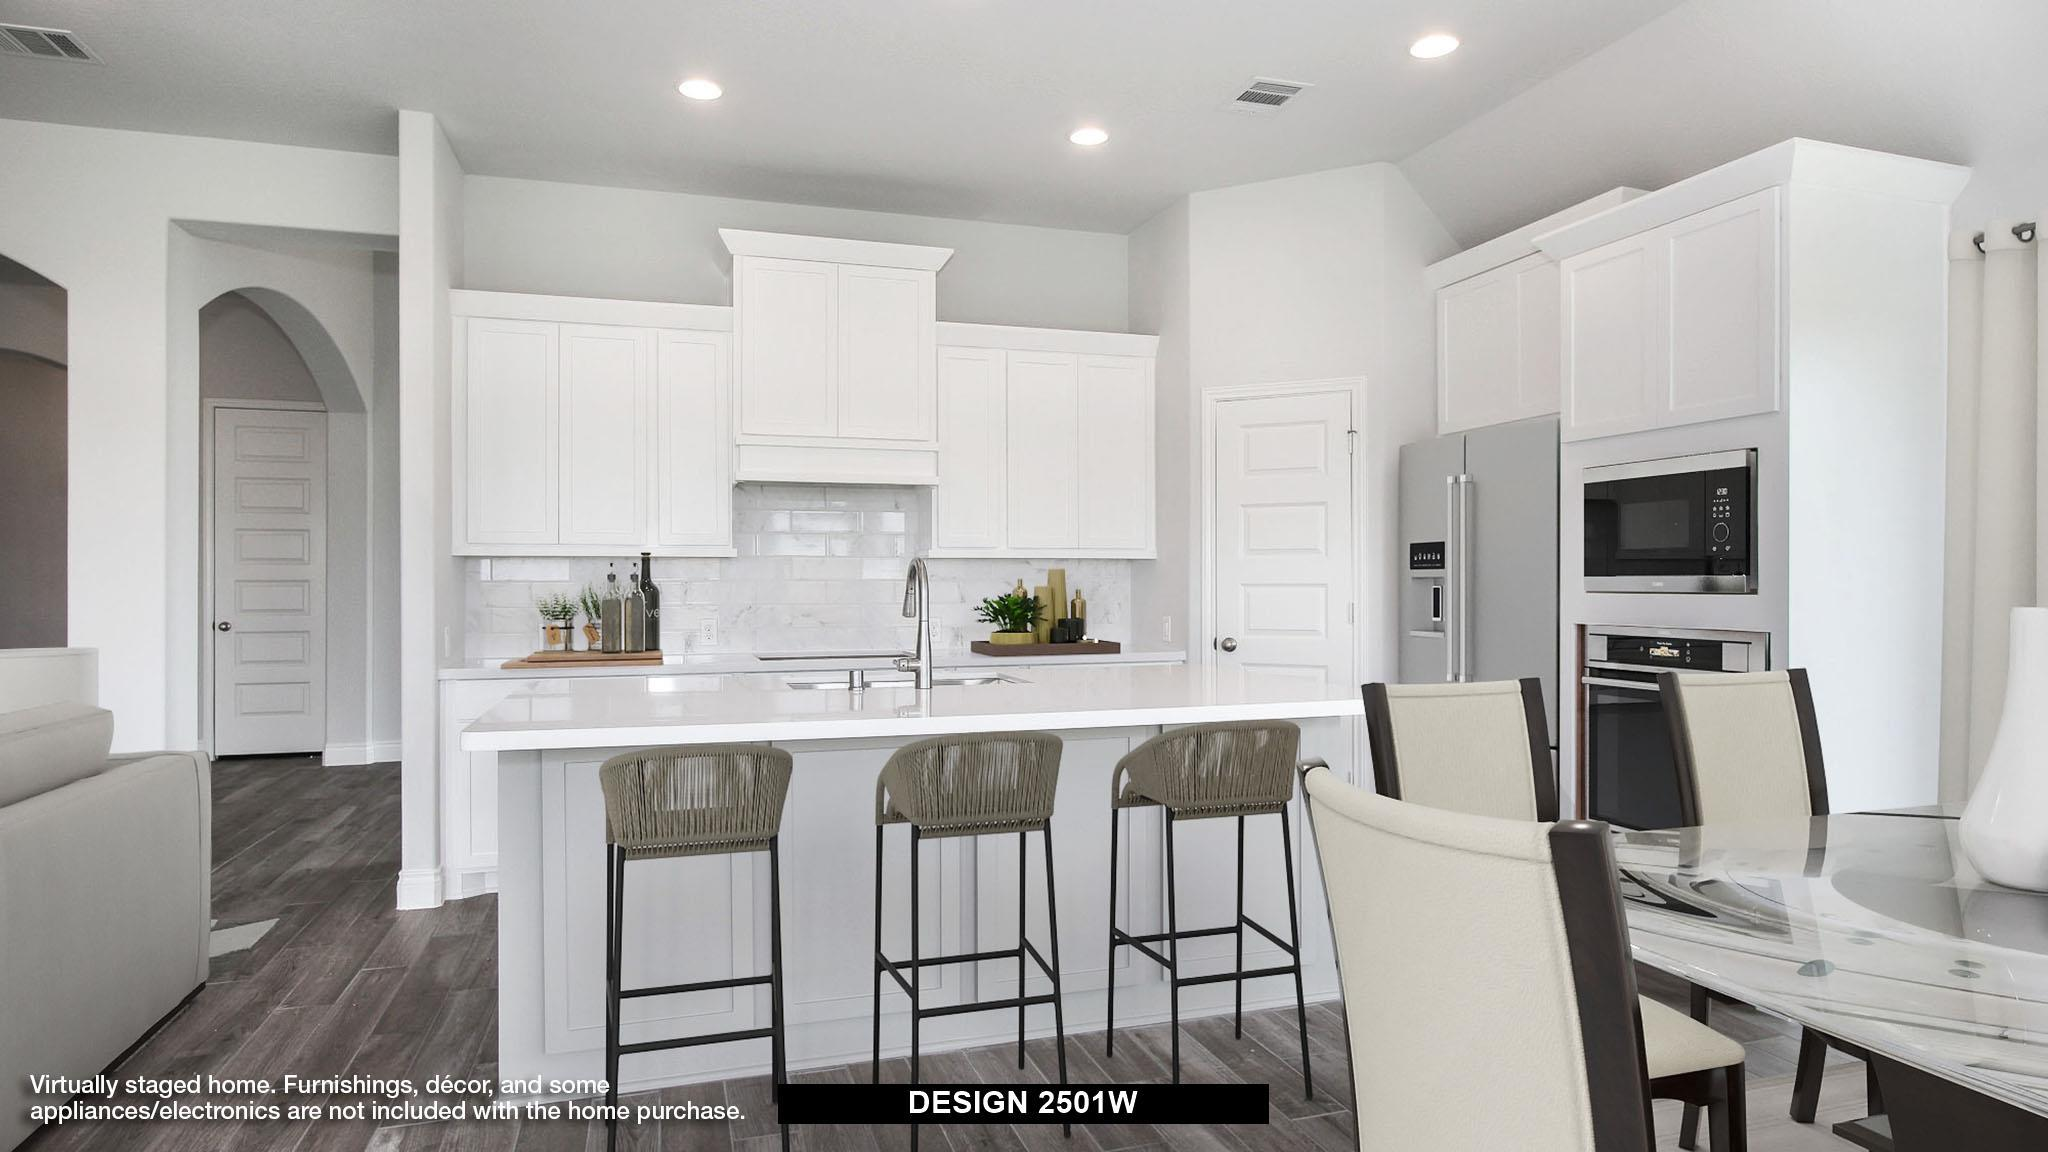 Kitchen featured in the 2501W By Perry Homes in Dallas, TX